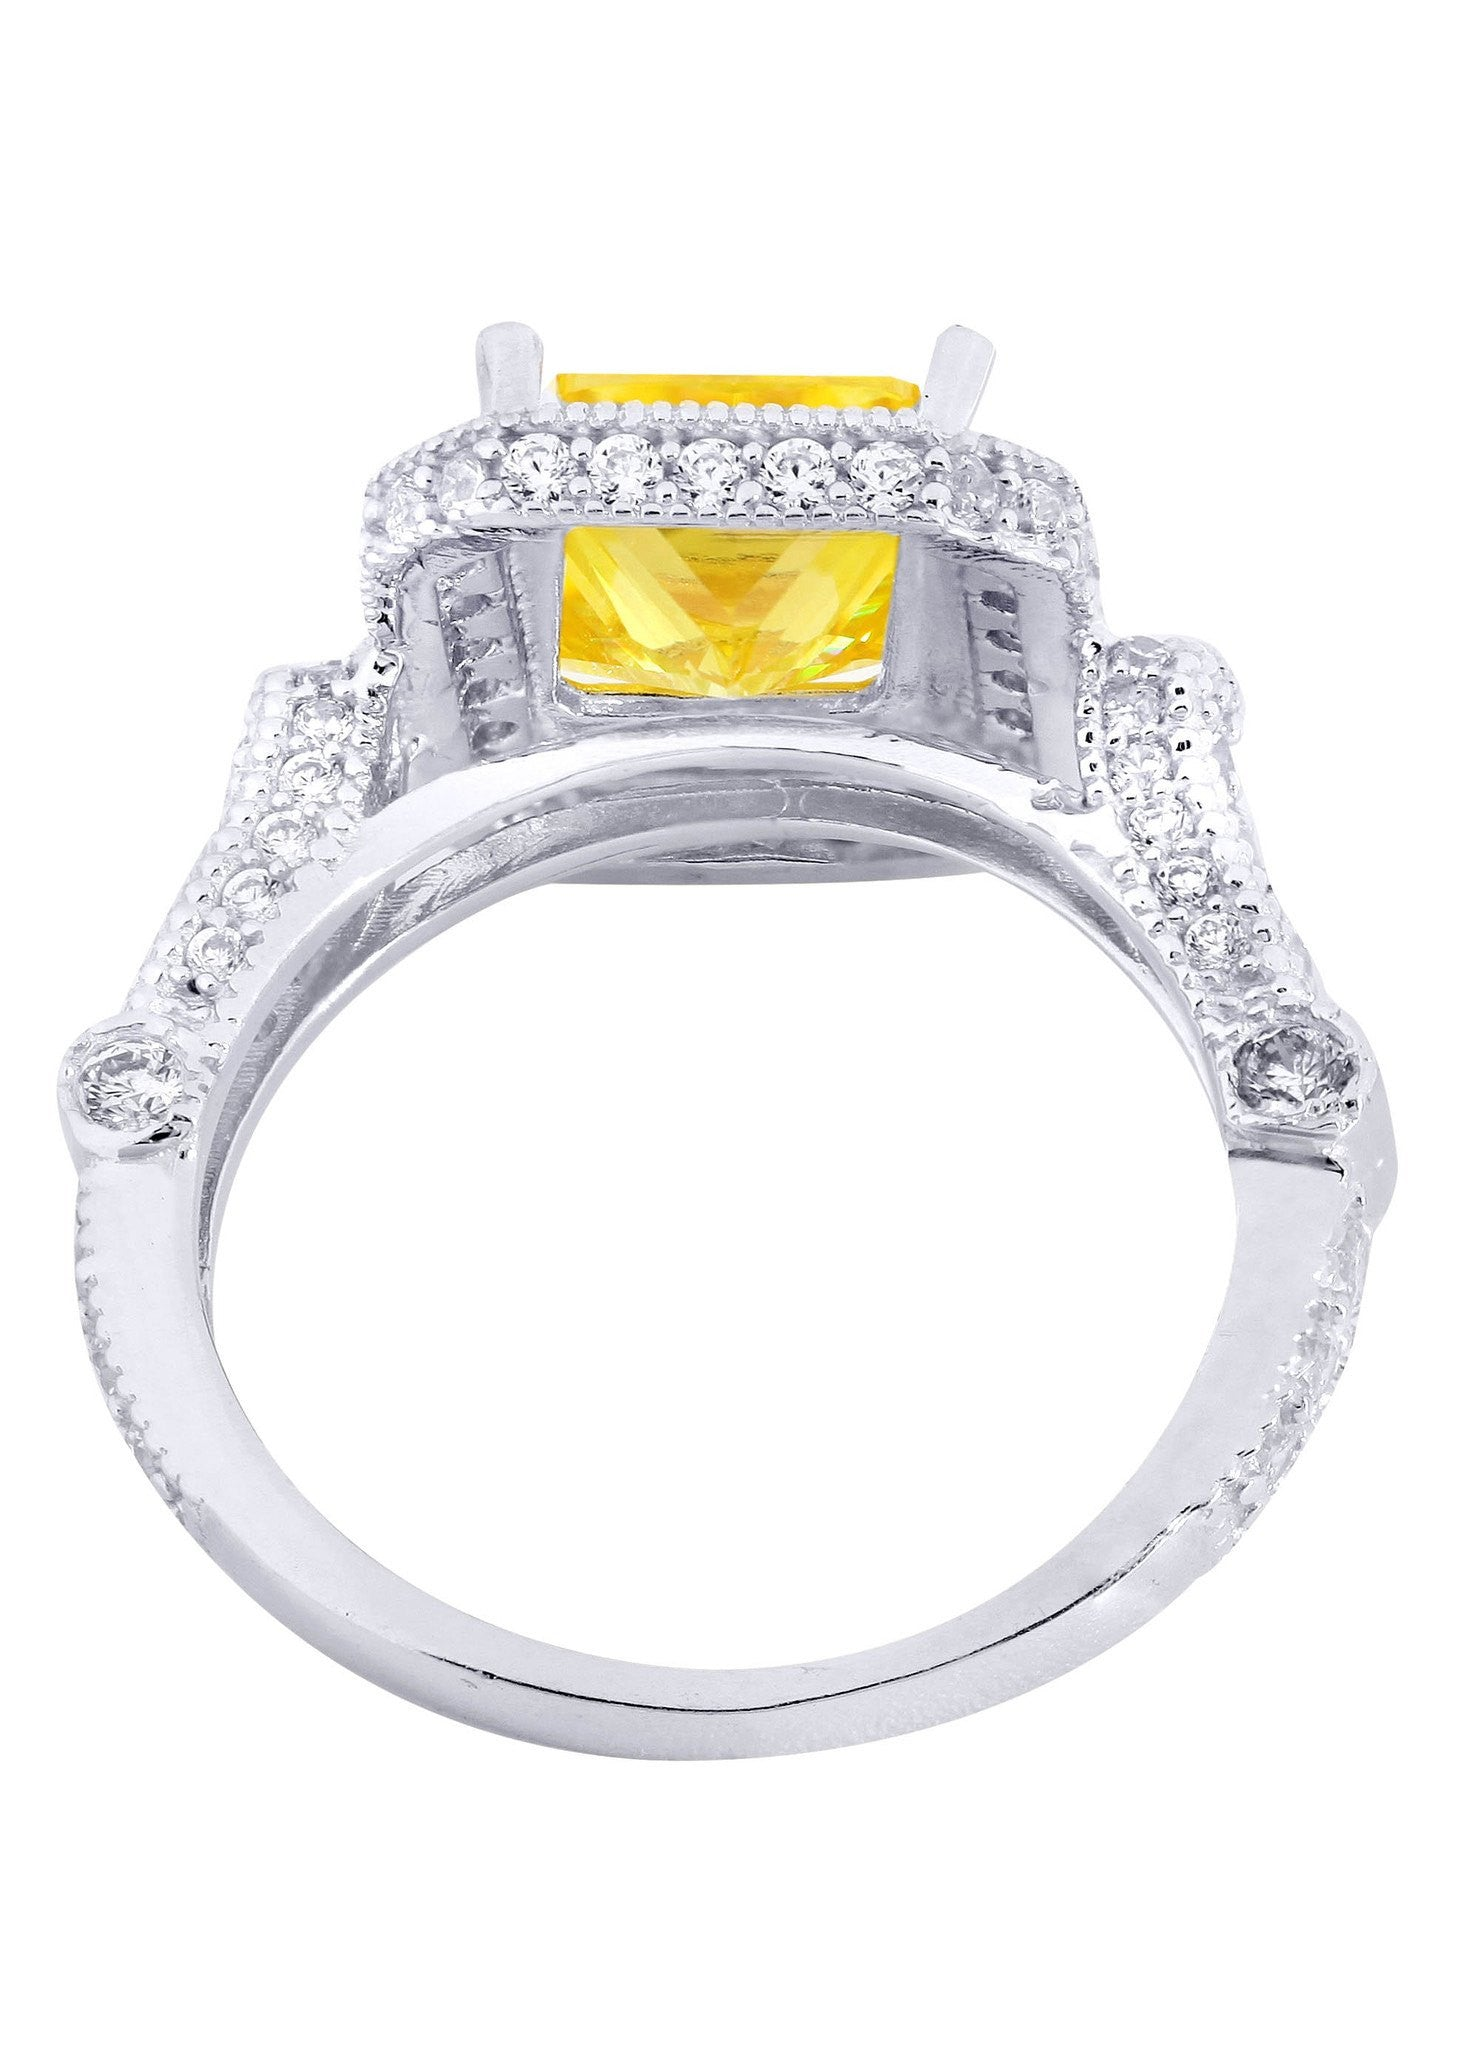 citrine promise ring 10k gold 5 grams frostnyc